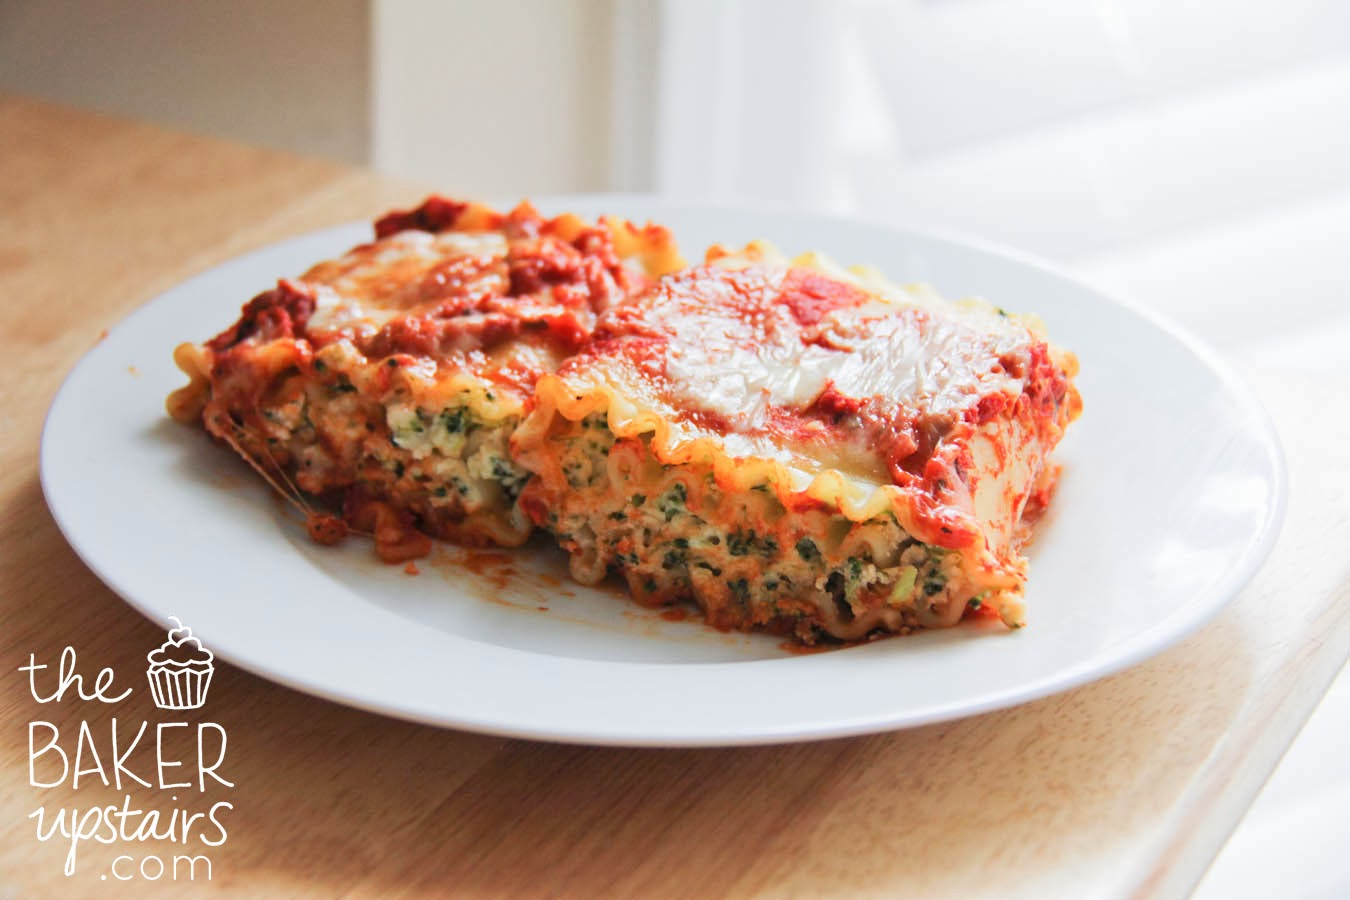 The Baker Upstairs: spinach lasagna rolls